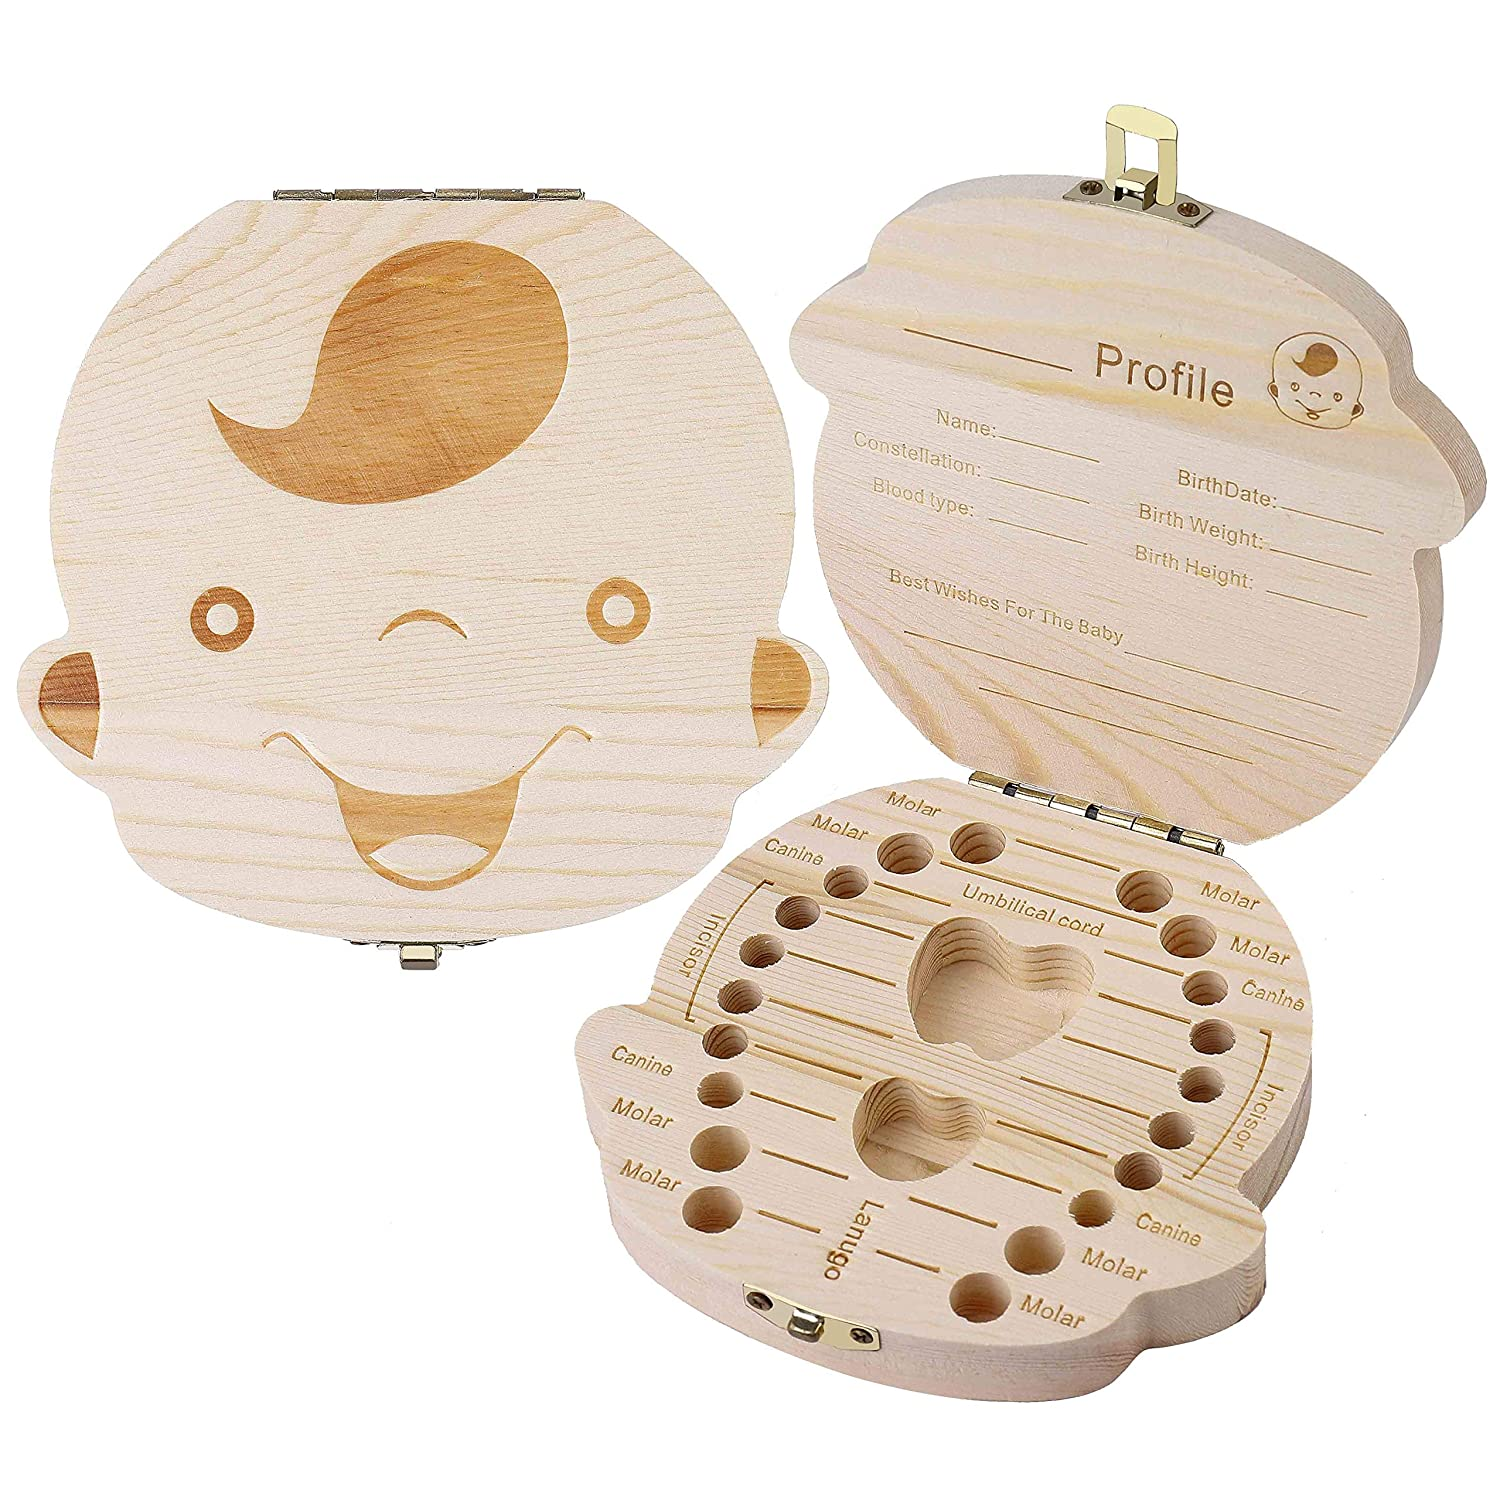 Teeth Save Box Baby Teeth Storage Box Keepsack Kids Wooden Tooth Souvenir Case to Collect Deciduous Molar Canine Incisor for Children Maoxin Tek